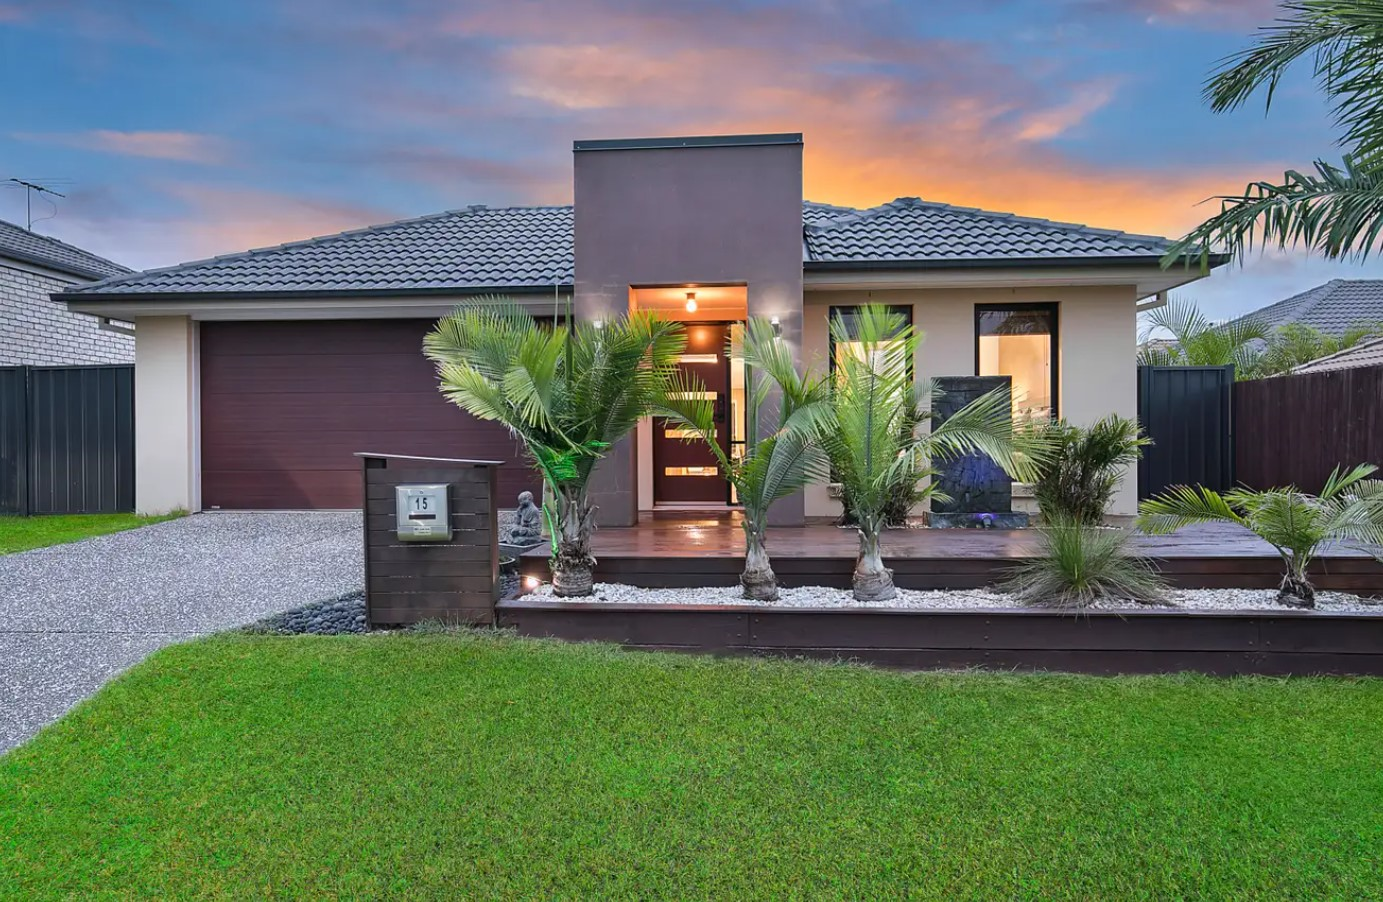 https://raywhitemetronorth.com.au/properties/residential-for-sale/qld/north-lakes-4509/house/2480331